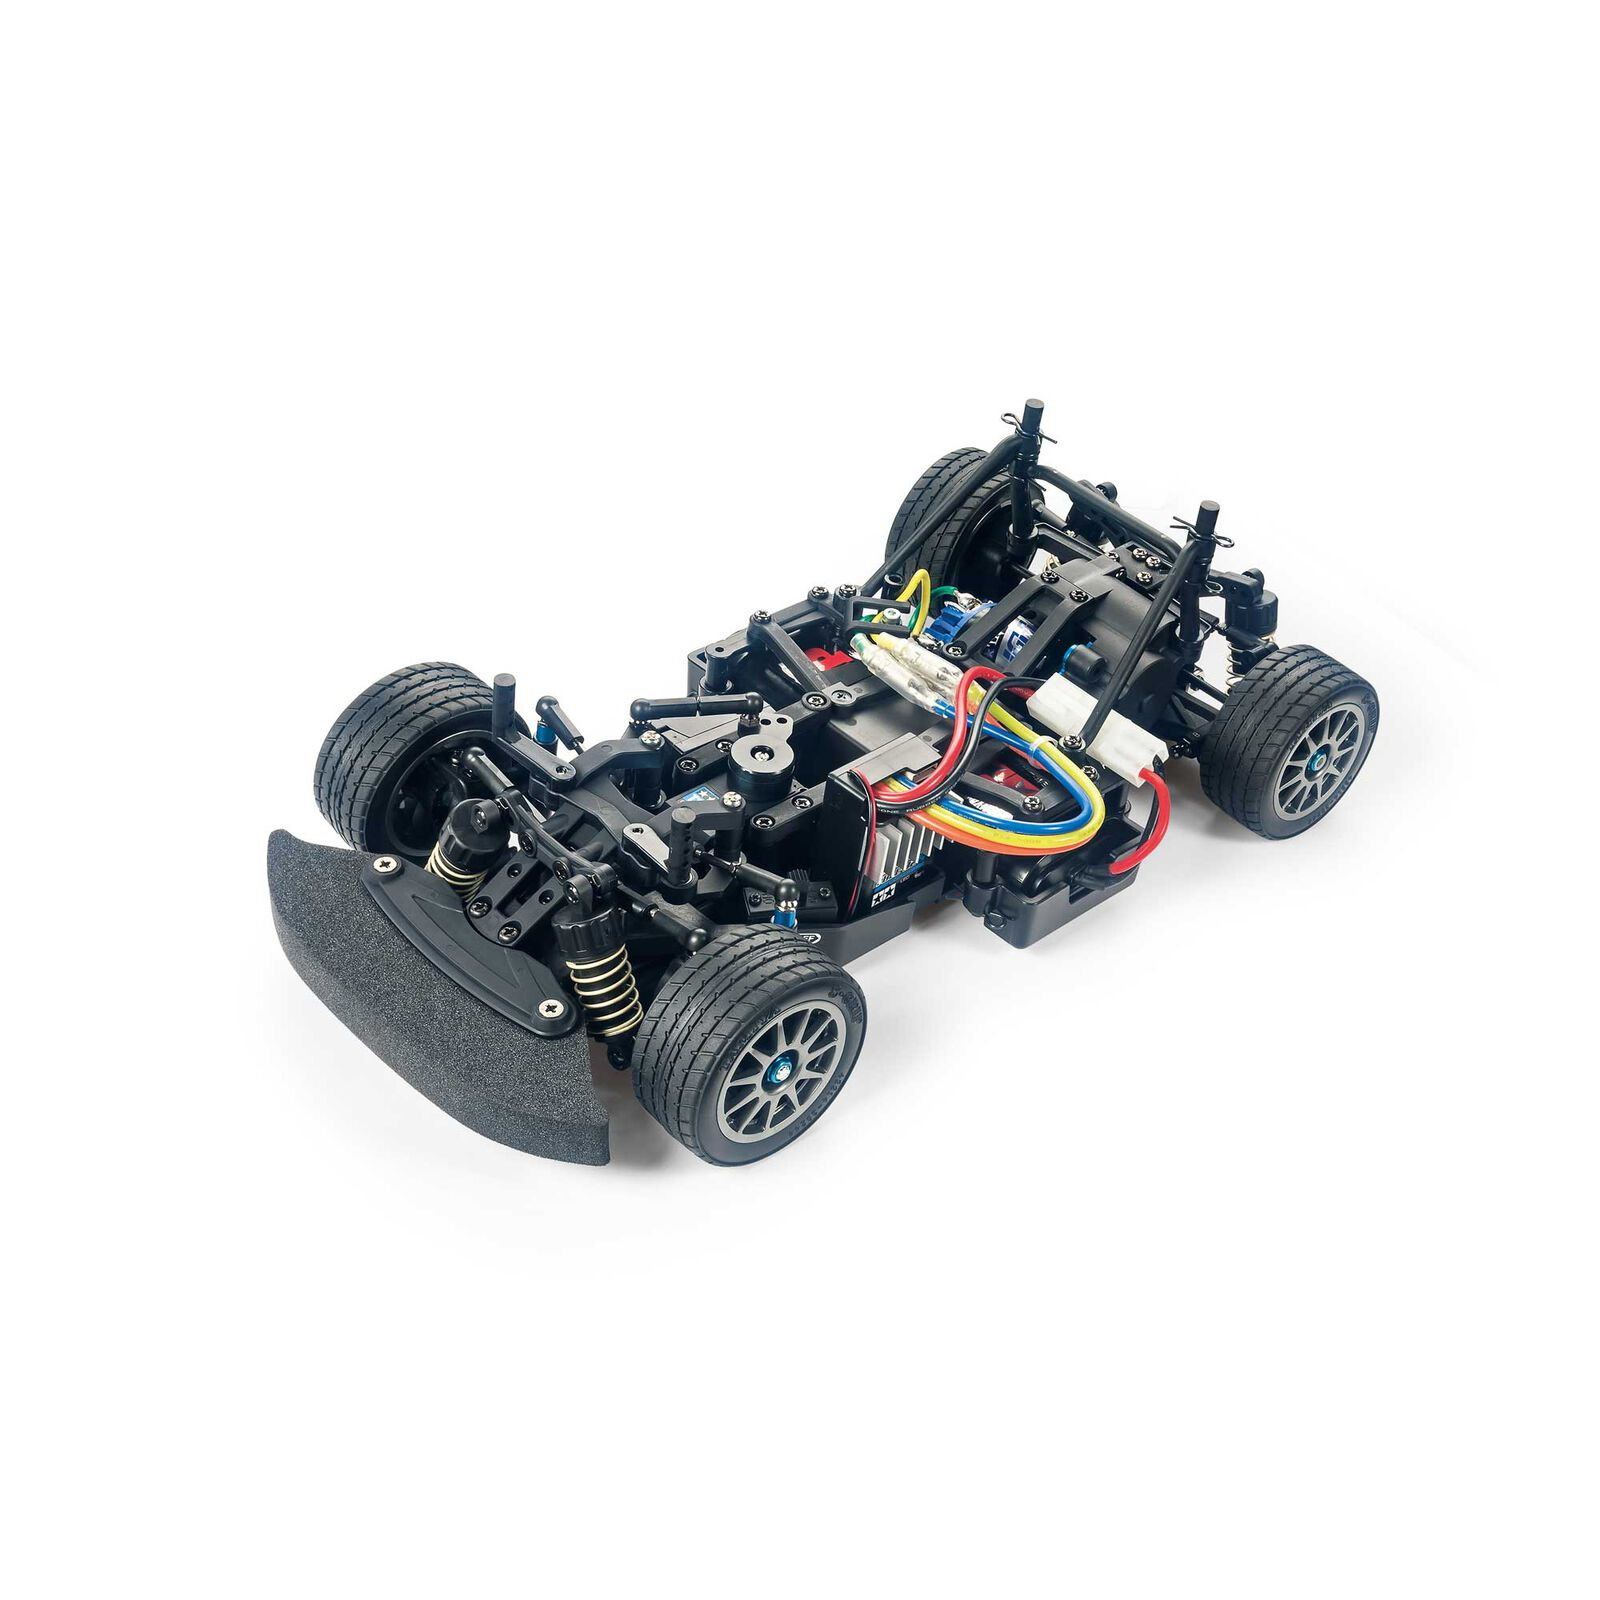 1/10 M-08 Concept Chassis 2WD Kit